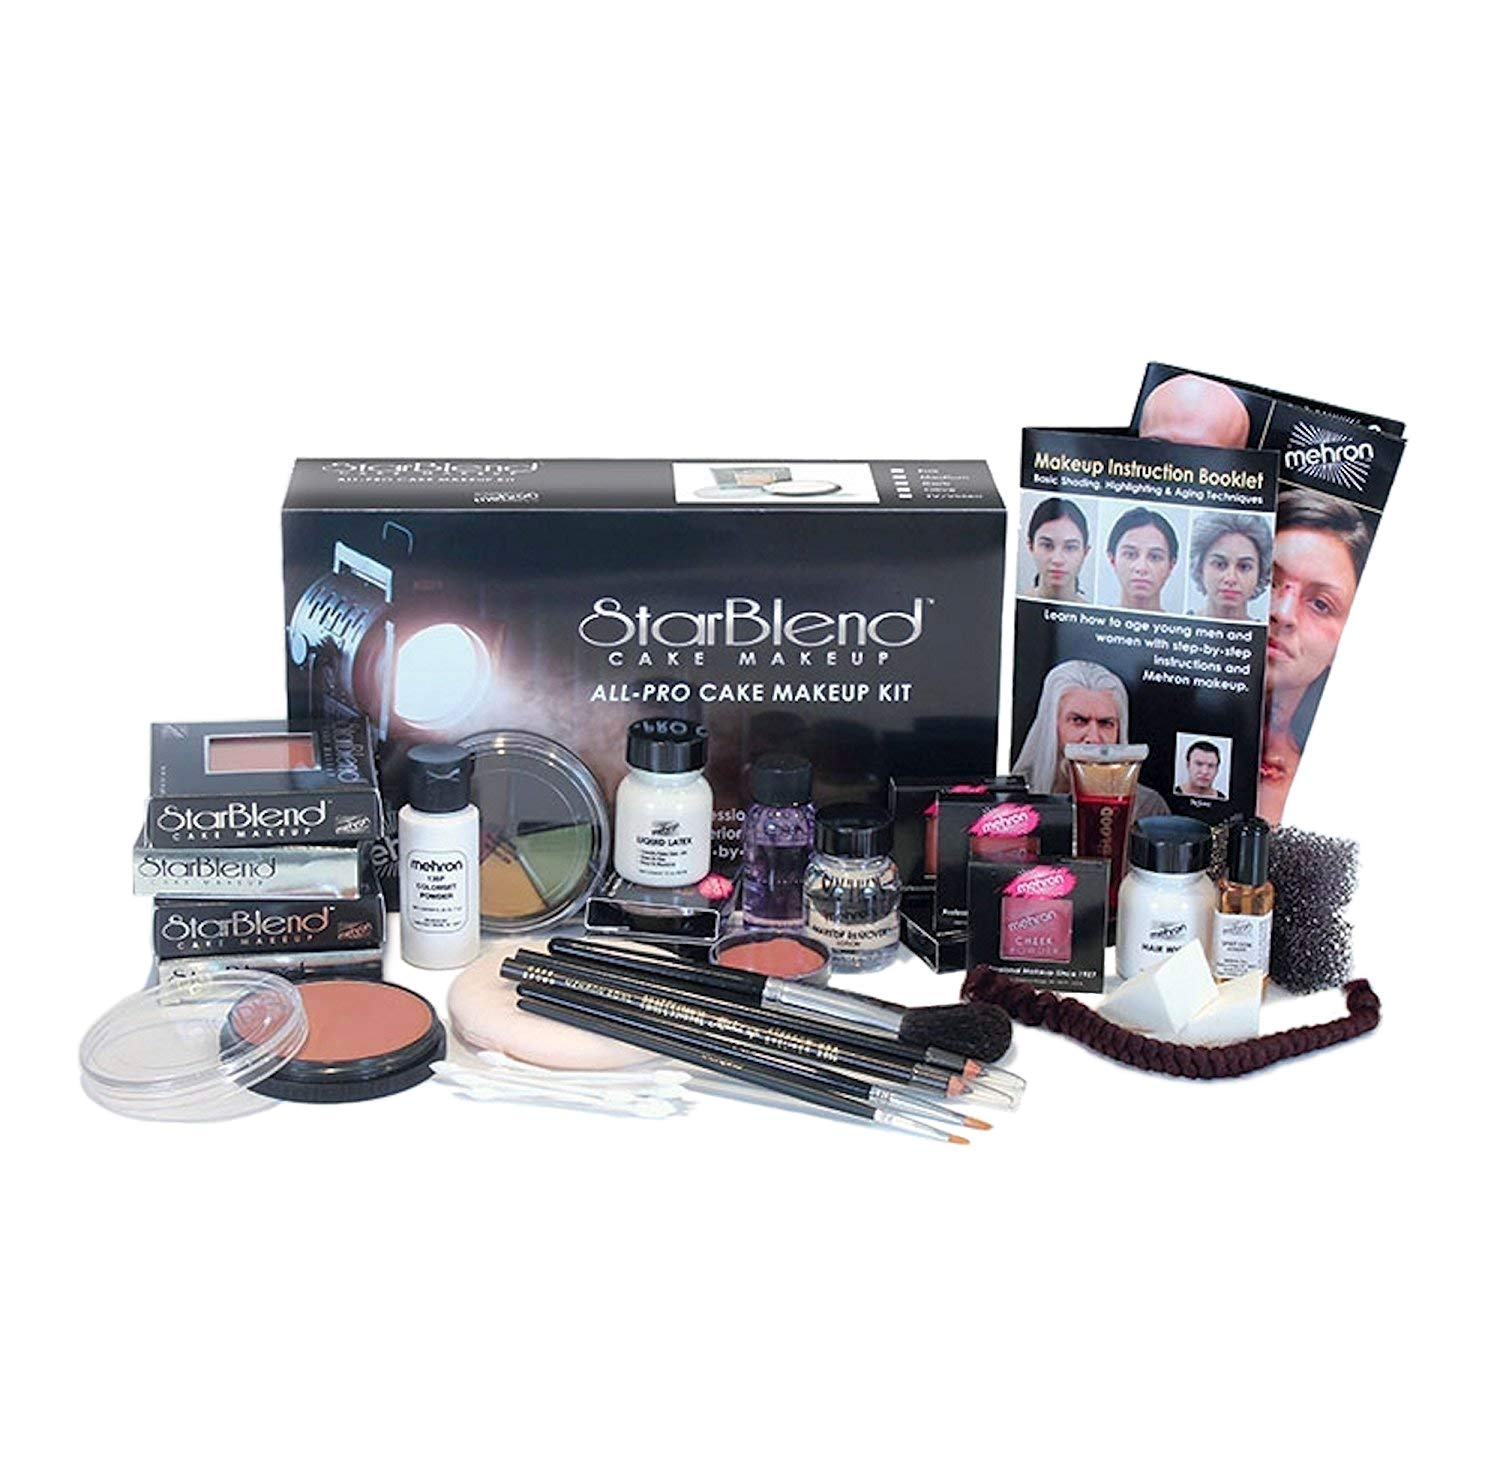 Mehron StarBlend Cake Makeup - All-Pro Makeup Kit - Everything A Professional Makeup Artist Needs For Stage, Film, Video & Photography - Step-By-Step Instructions Included - For''TV/Video''